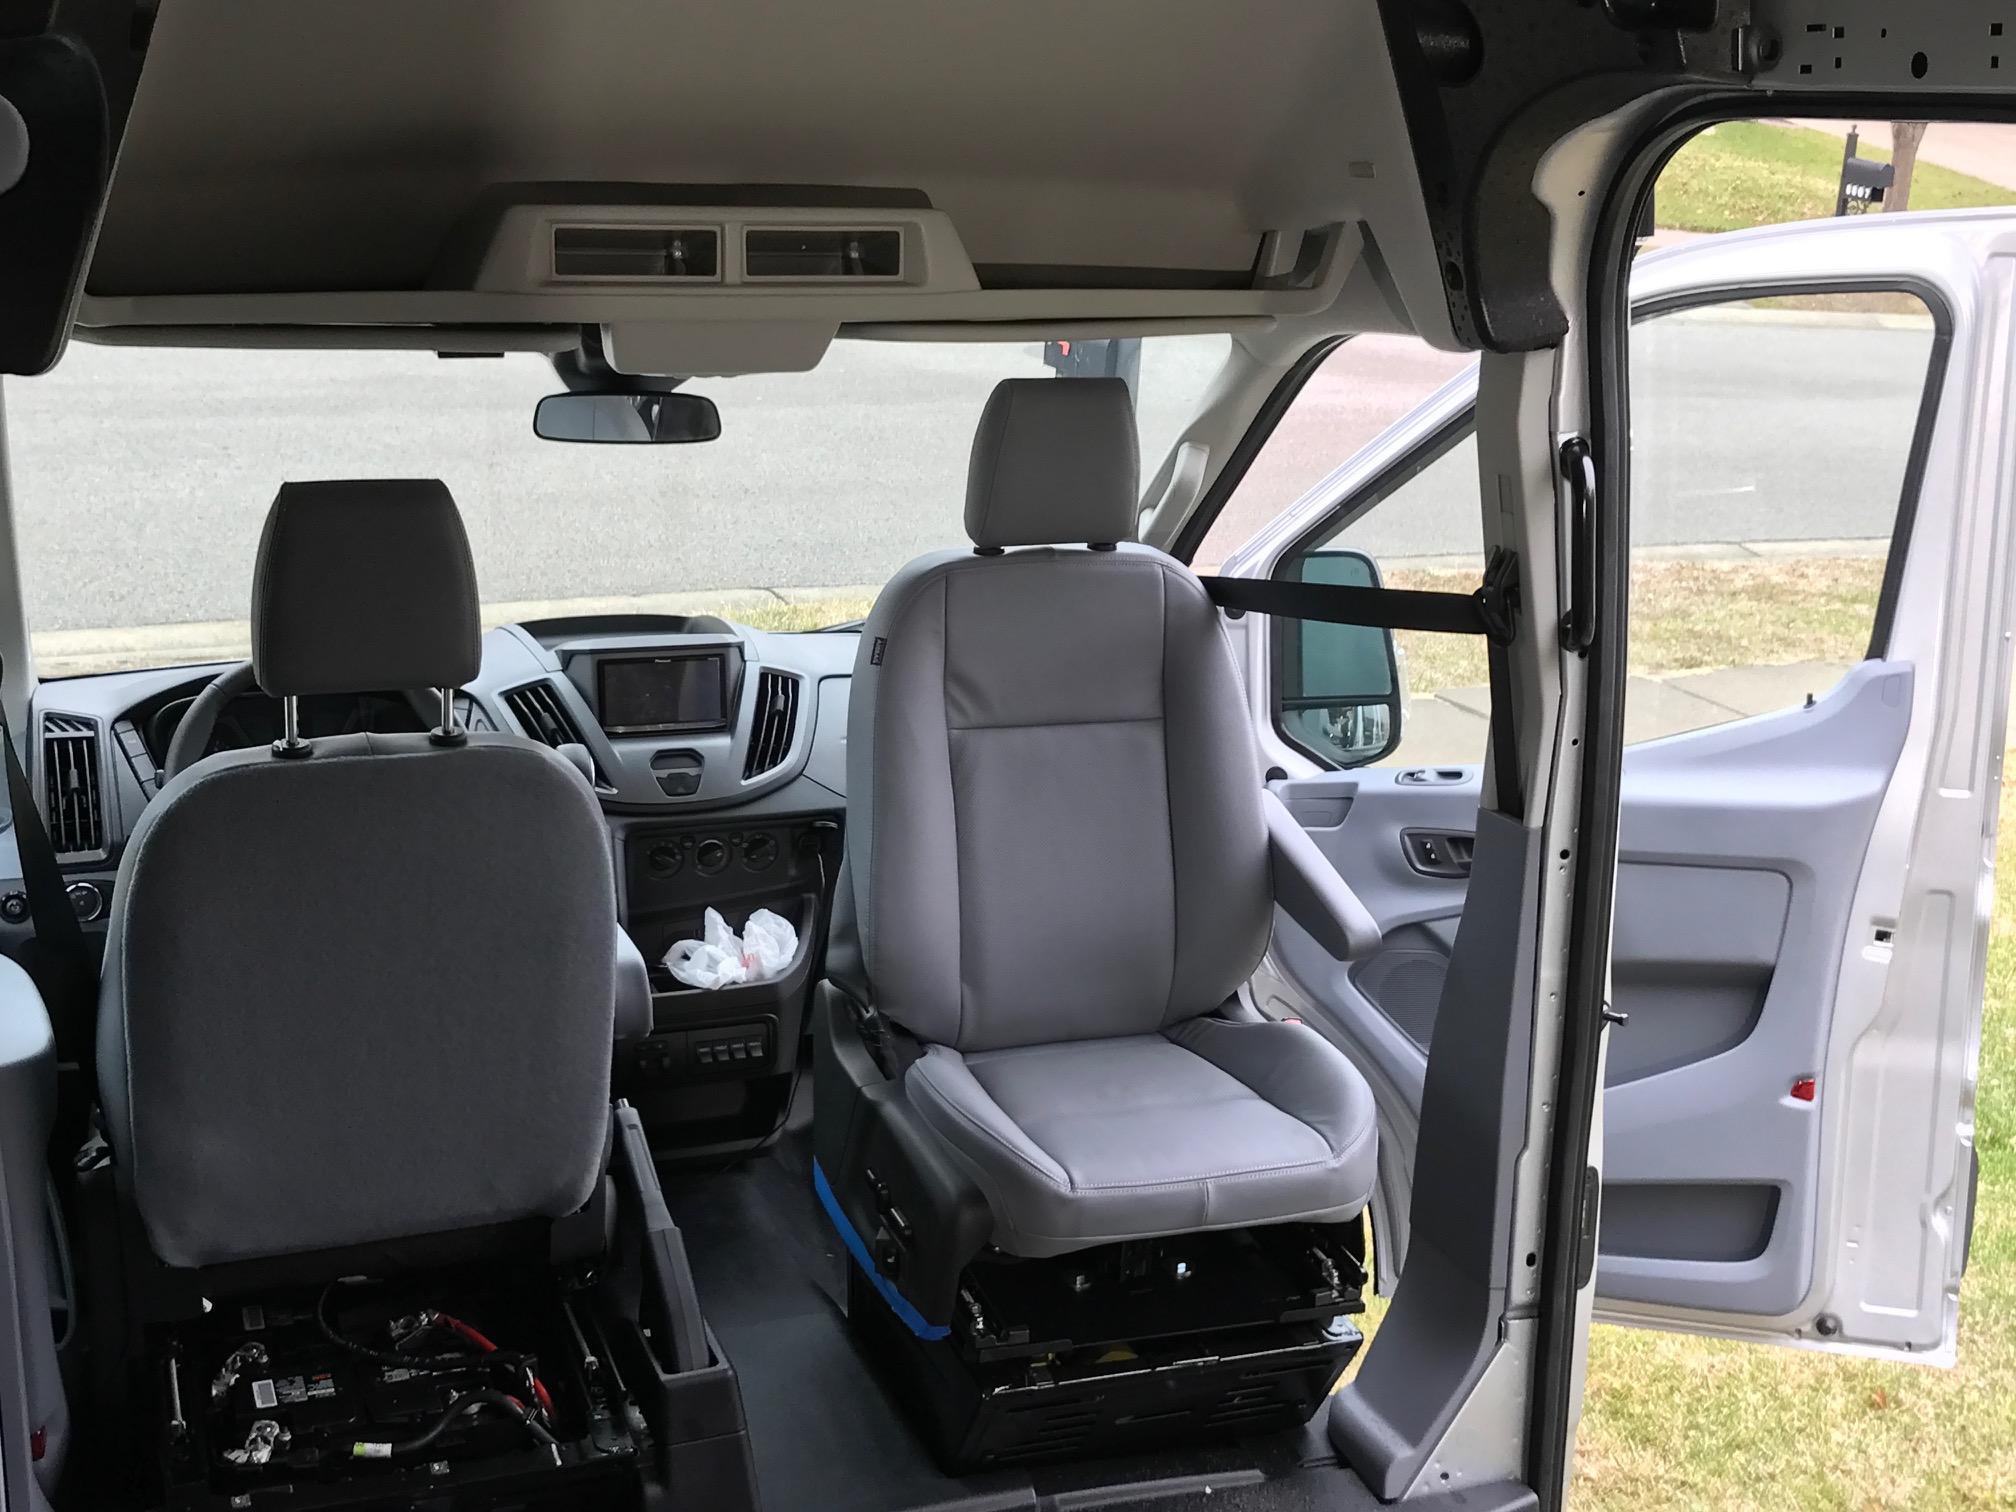 Van Conversion Install Seat Swivel In Ford Transit